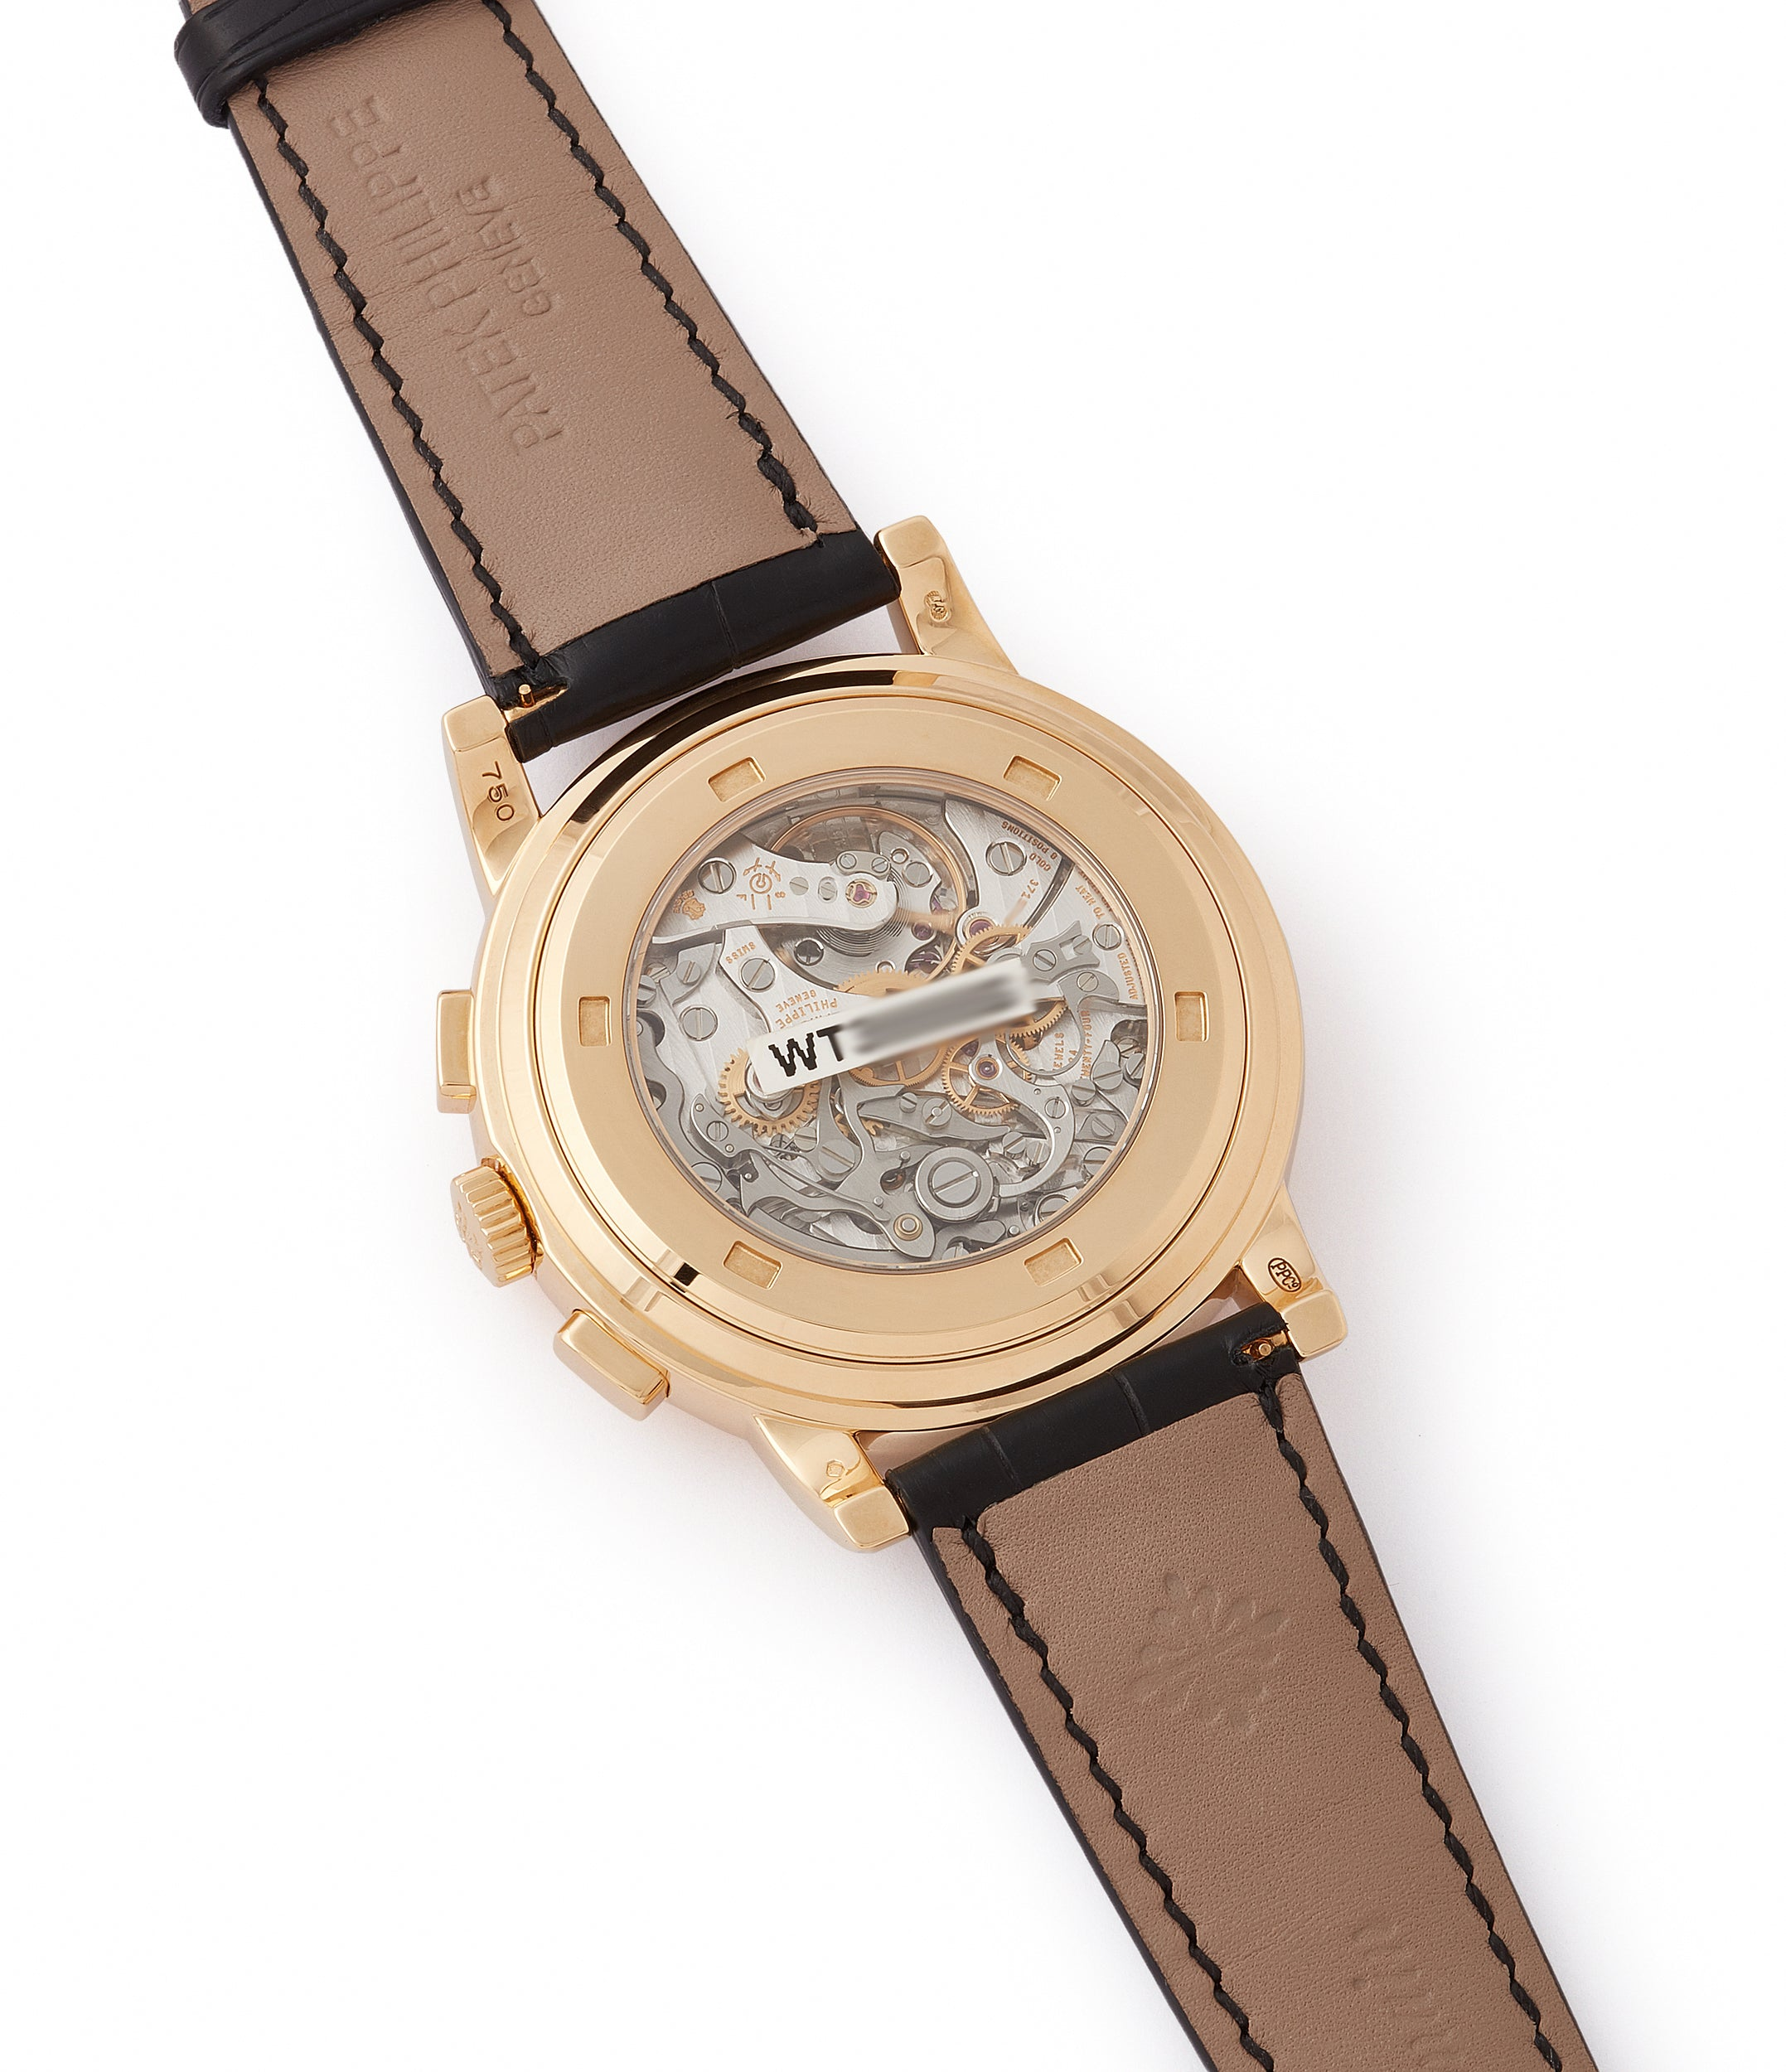 CH 27-70 manual-winding Patek Philippe 5070J-012 Saatchi Edition Chronograph brown dial yellow gold watch for sale online at A Collected Man London UK specialist of rare watches